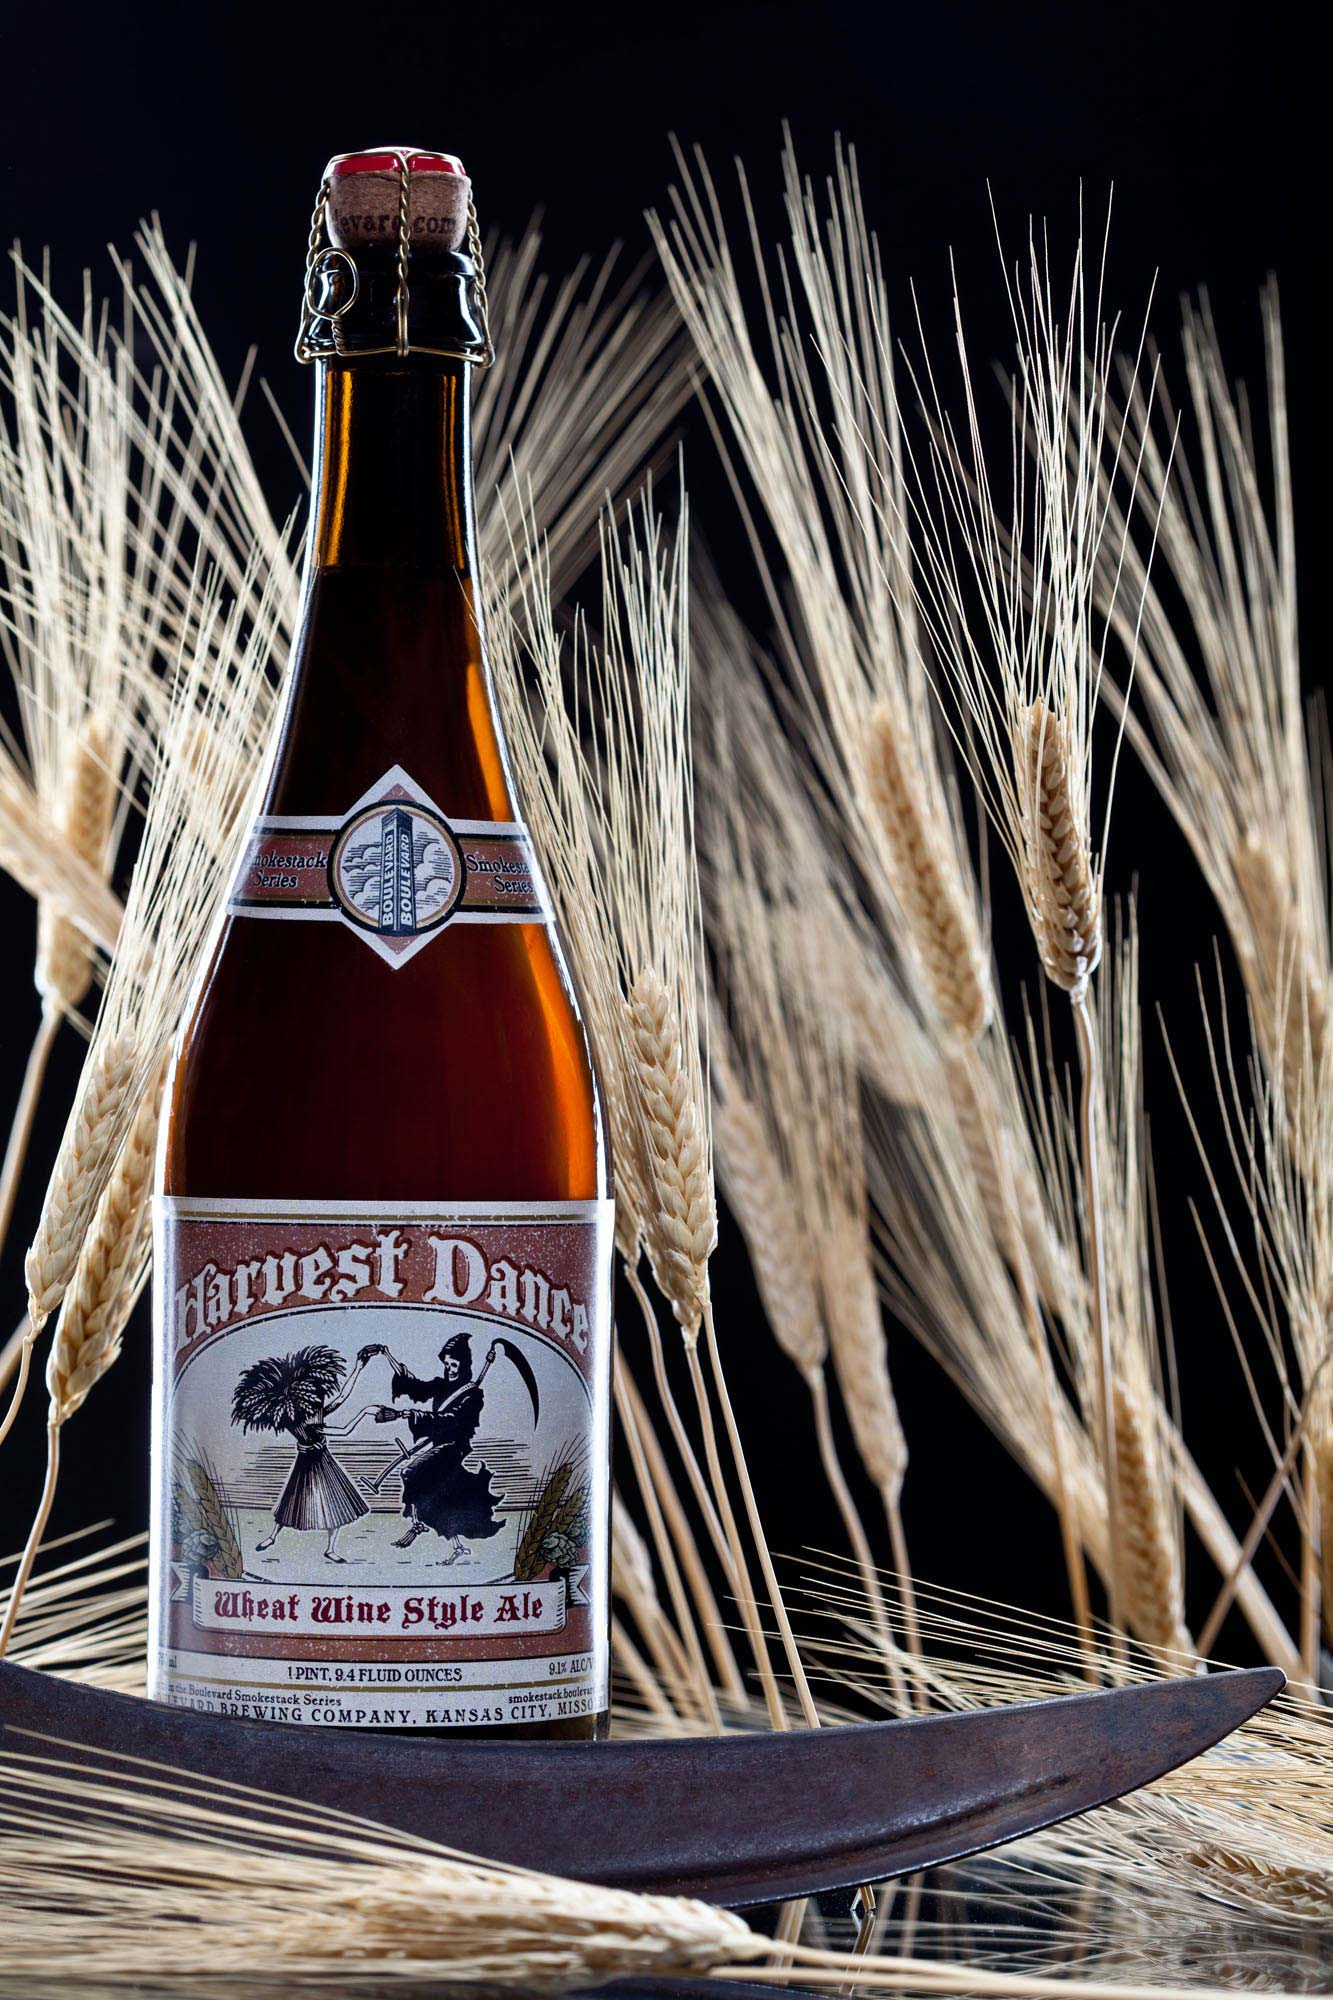 Still life of Boulevard Beer - Harvest Dance | Wheat and Sickle | Dramatic product photography | Bottle Photography | Shot in Denver Colorado